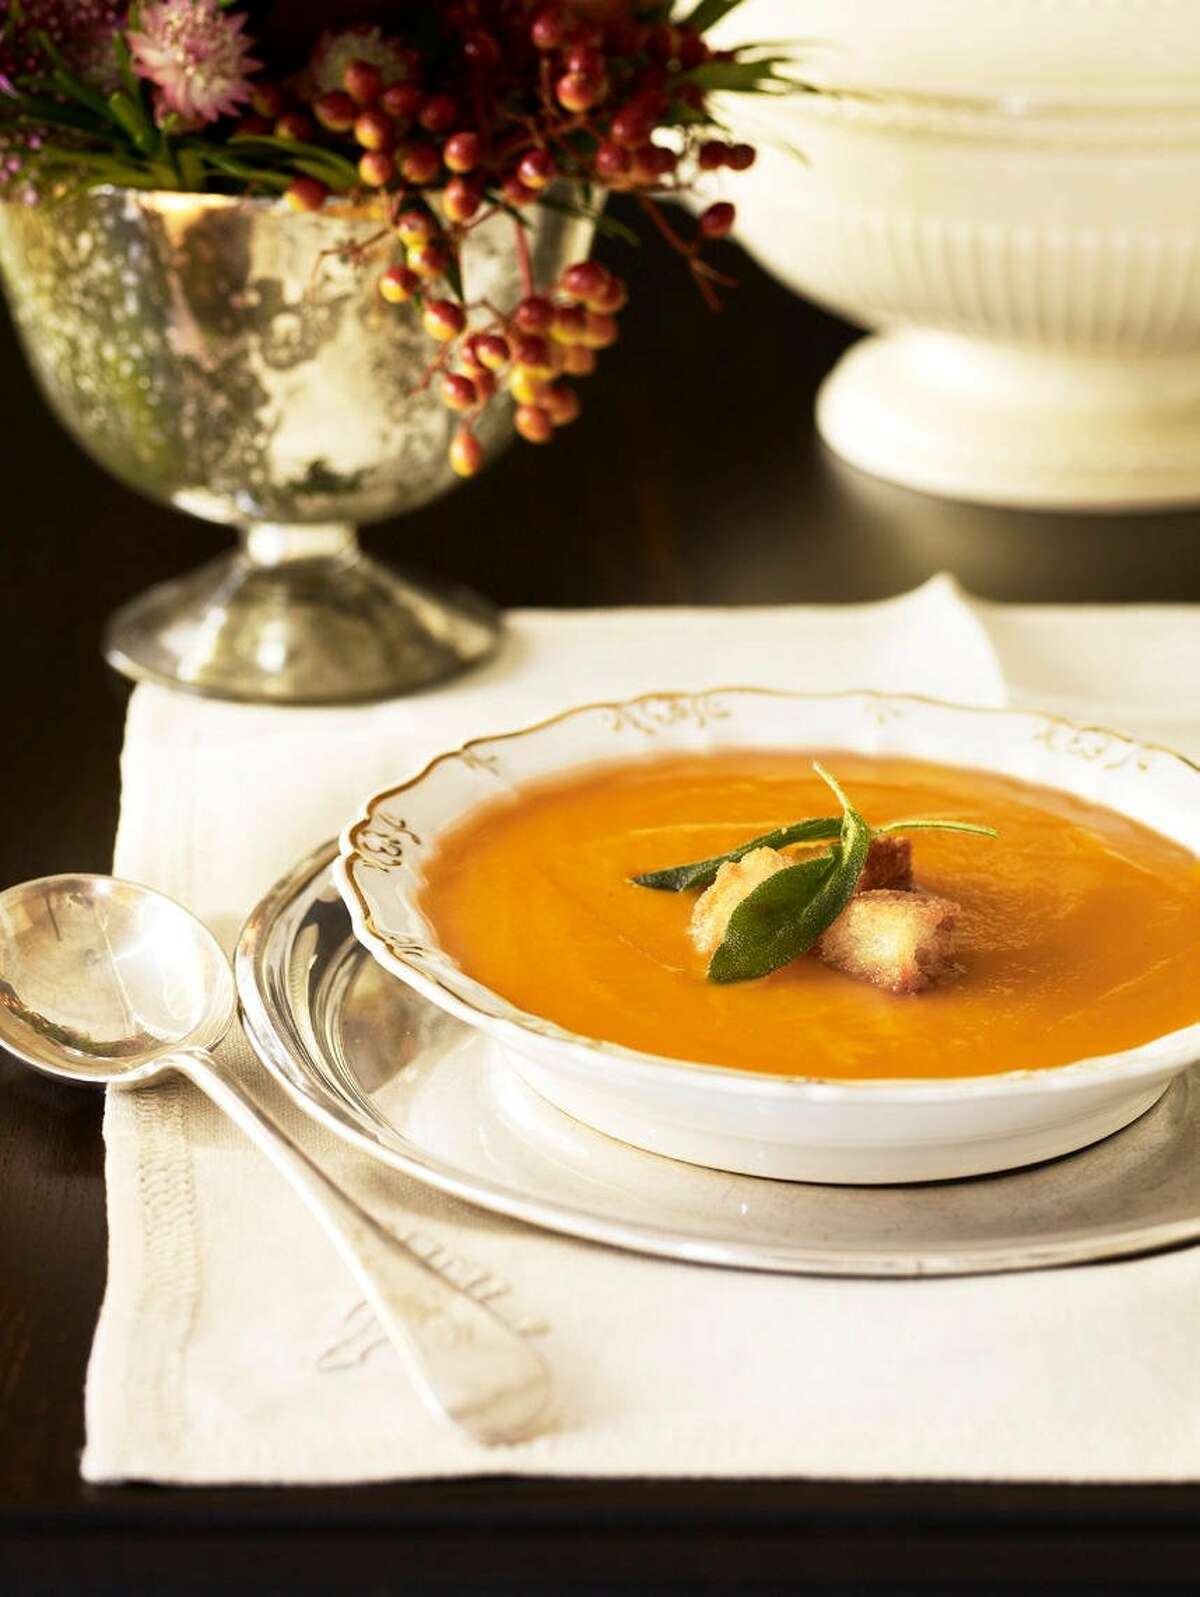 Good Housekeeping recipe for Butternut Squash Soup with Sage.